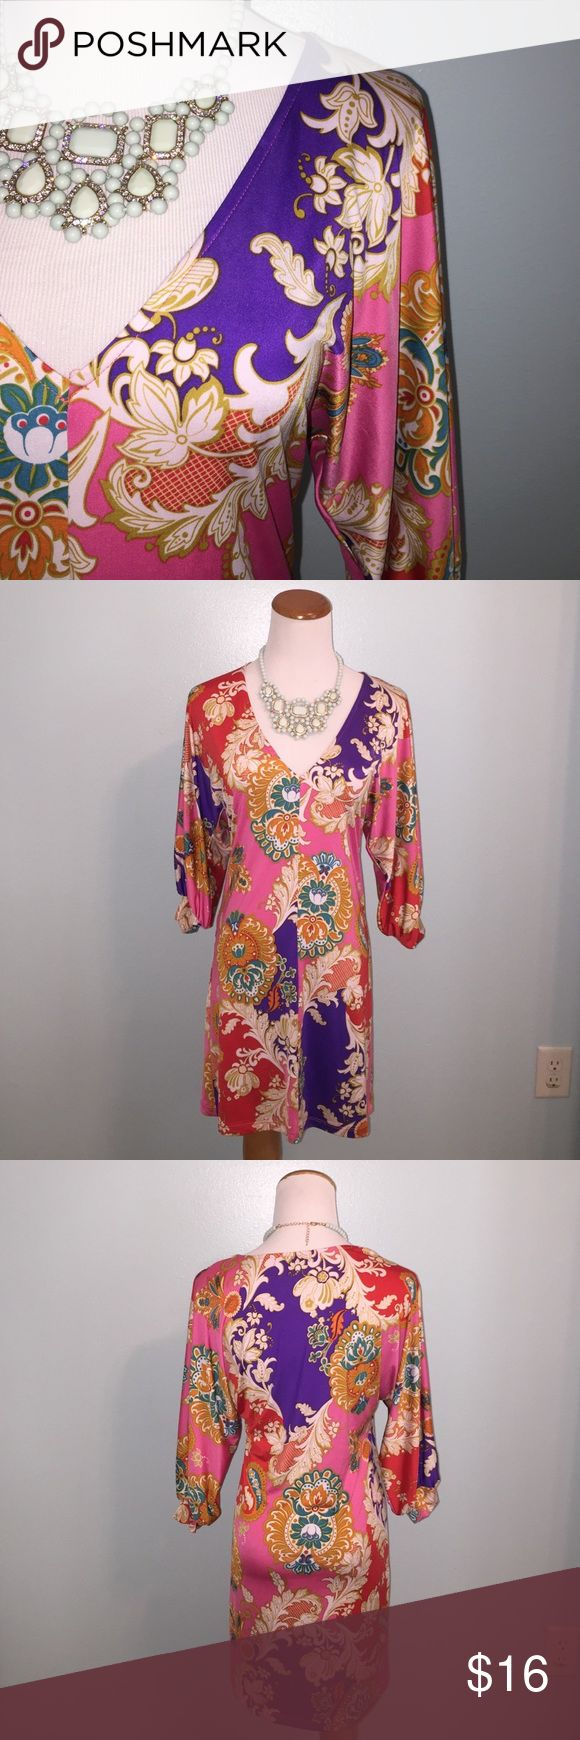 Colorful paisley print dress Size S. 3/4 length sleeves. Polyester/spandex blend. Karlie Dresses Mini